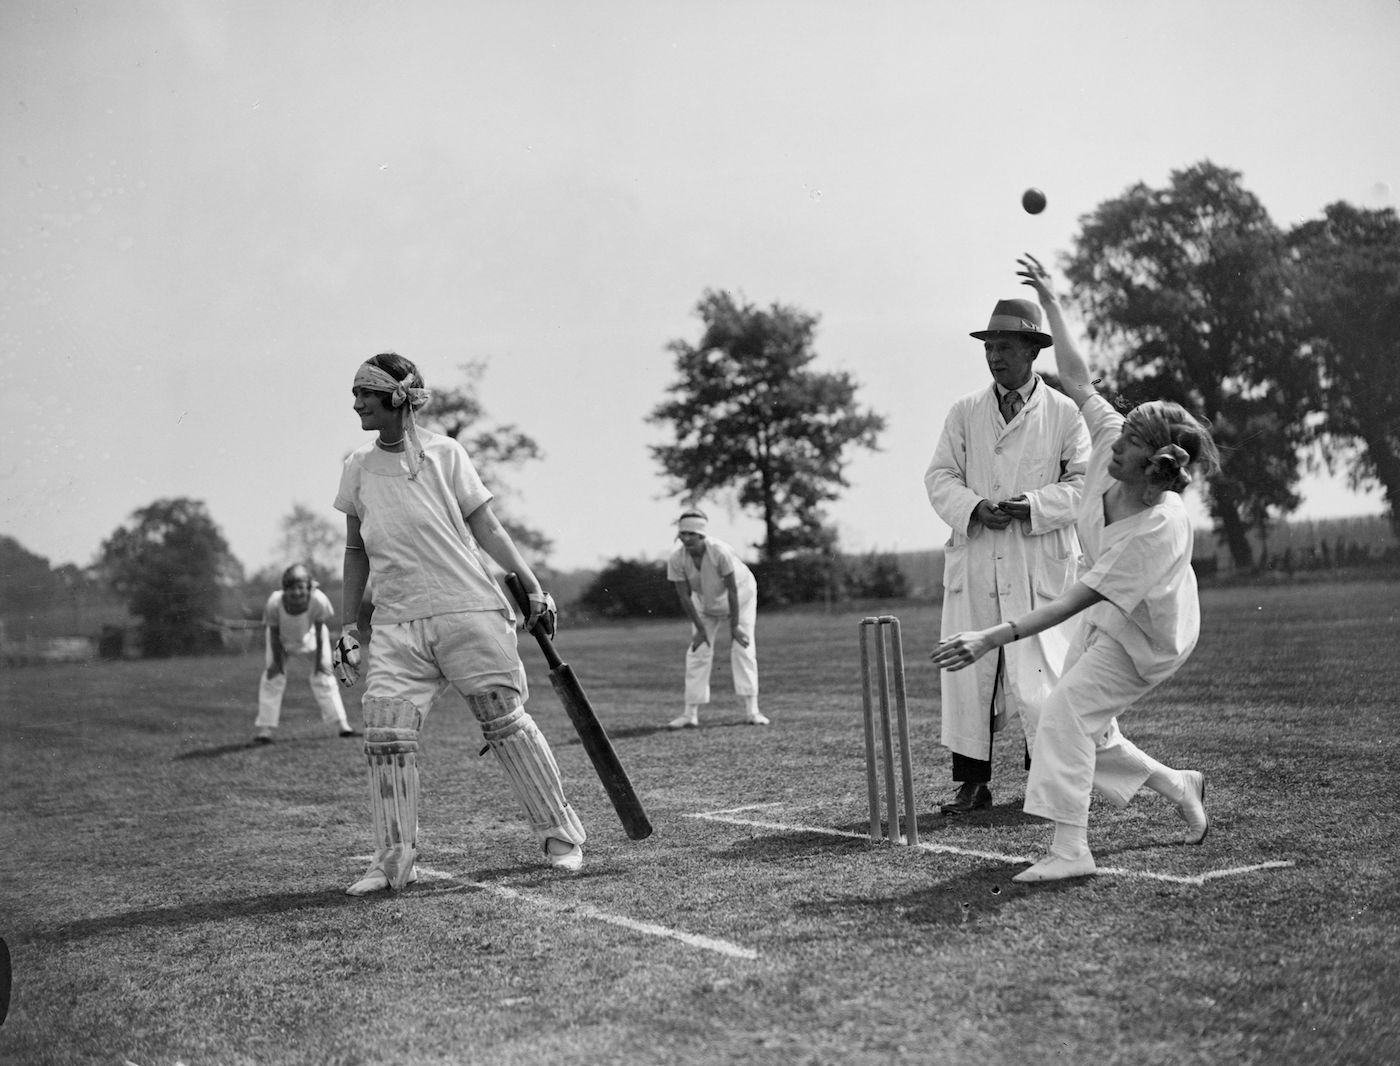 Participants in a 1927 ladies' pyjama cricket match swap floppy hats for headscarves